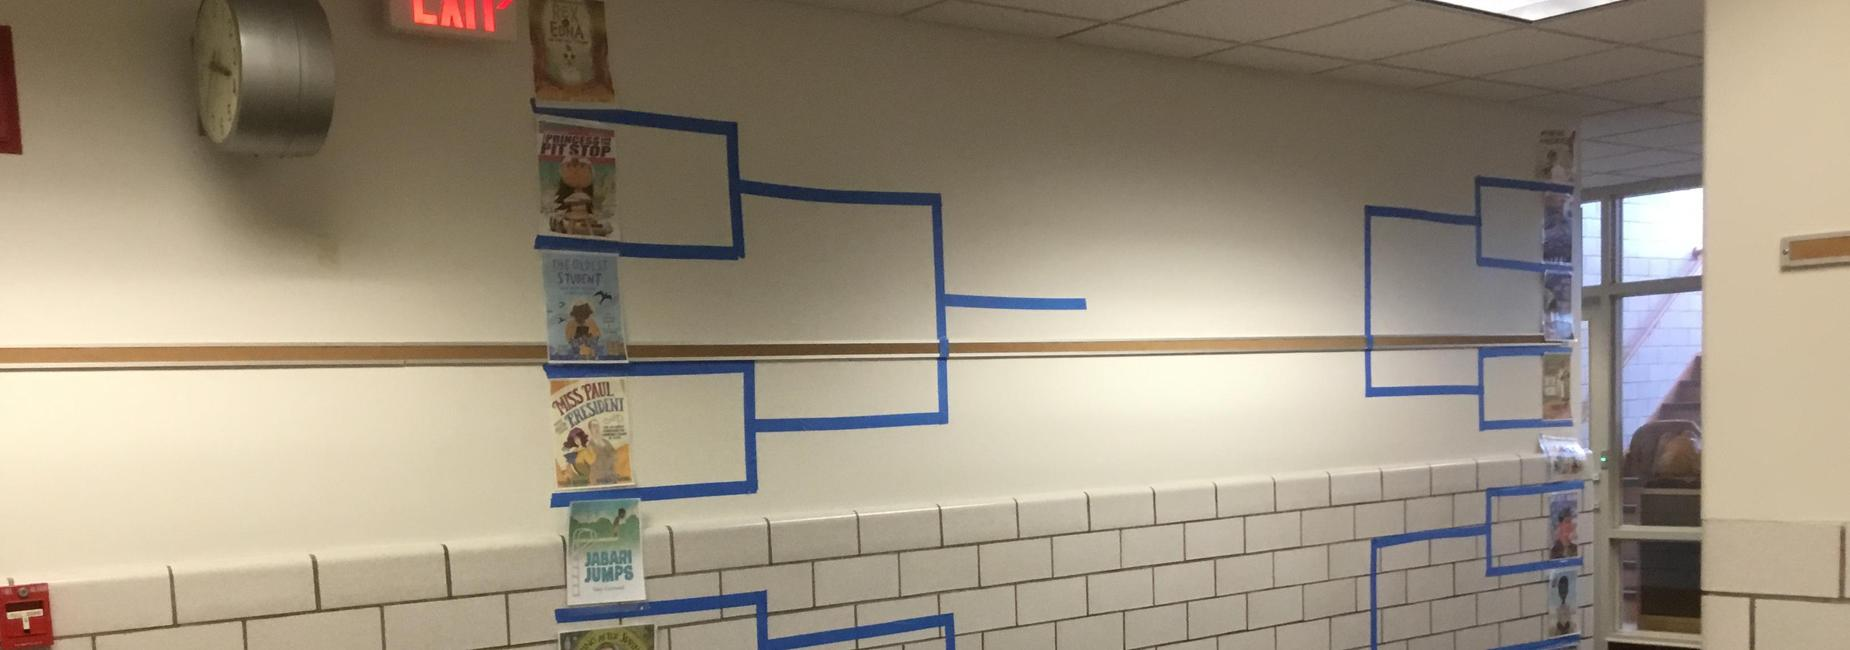 Books in a bracket